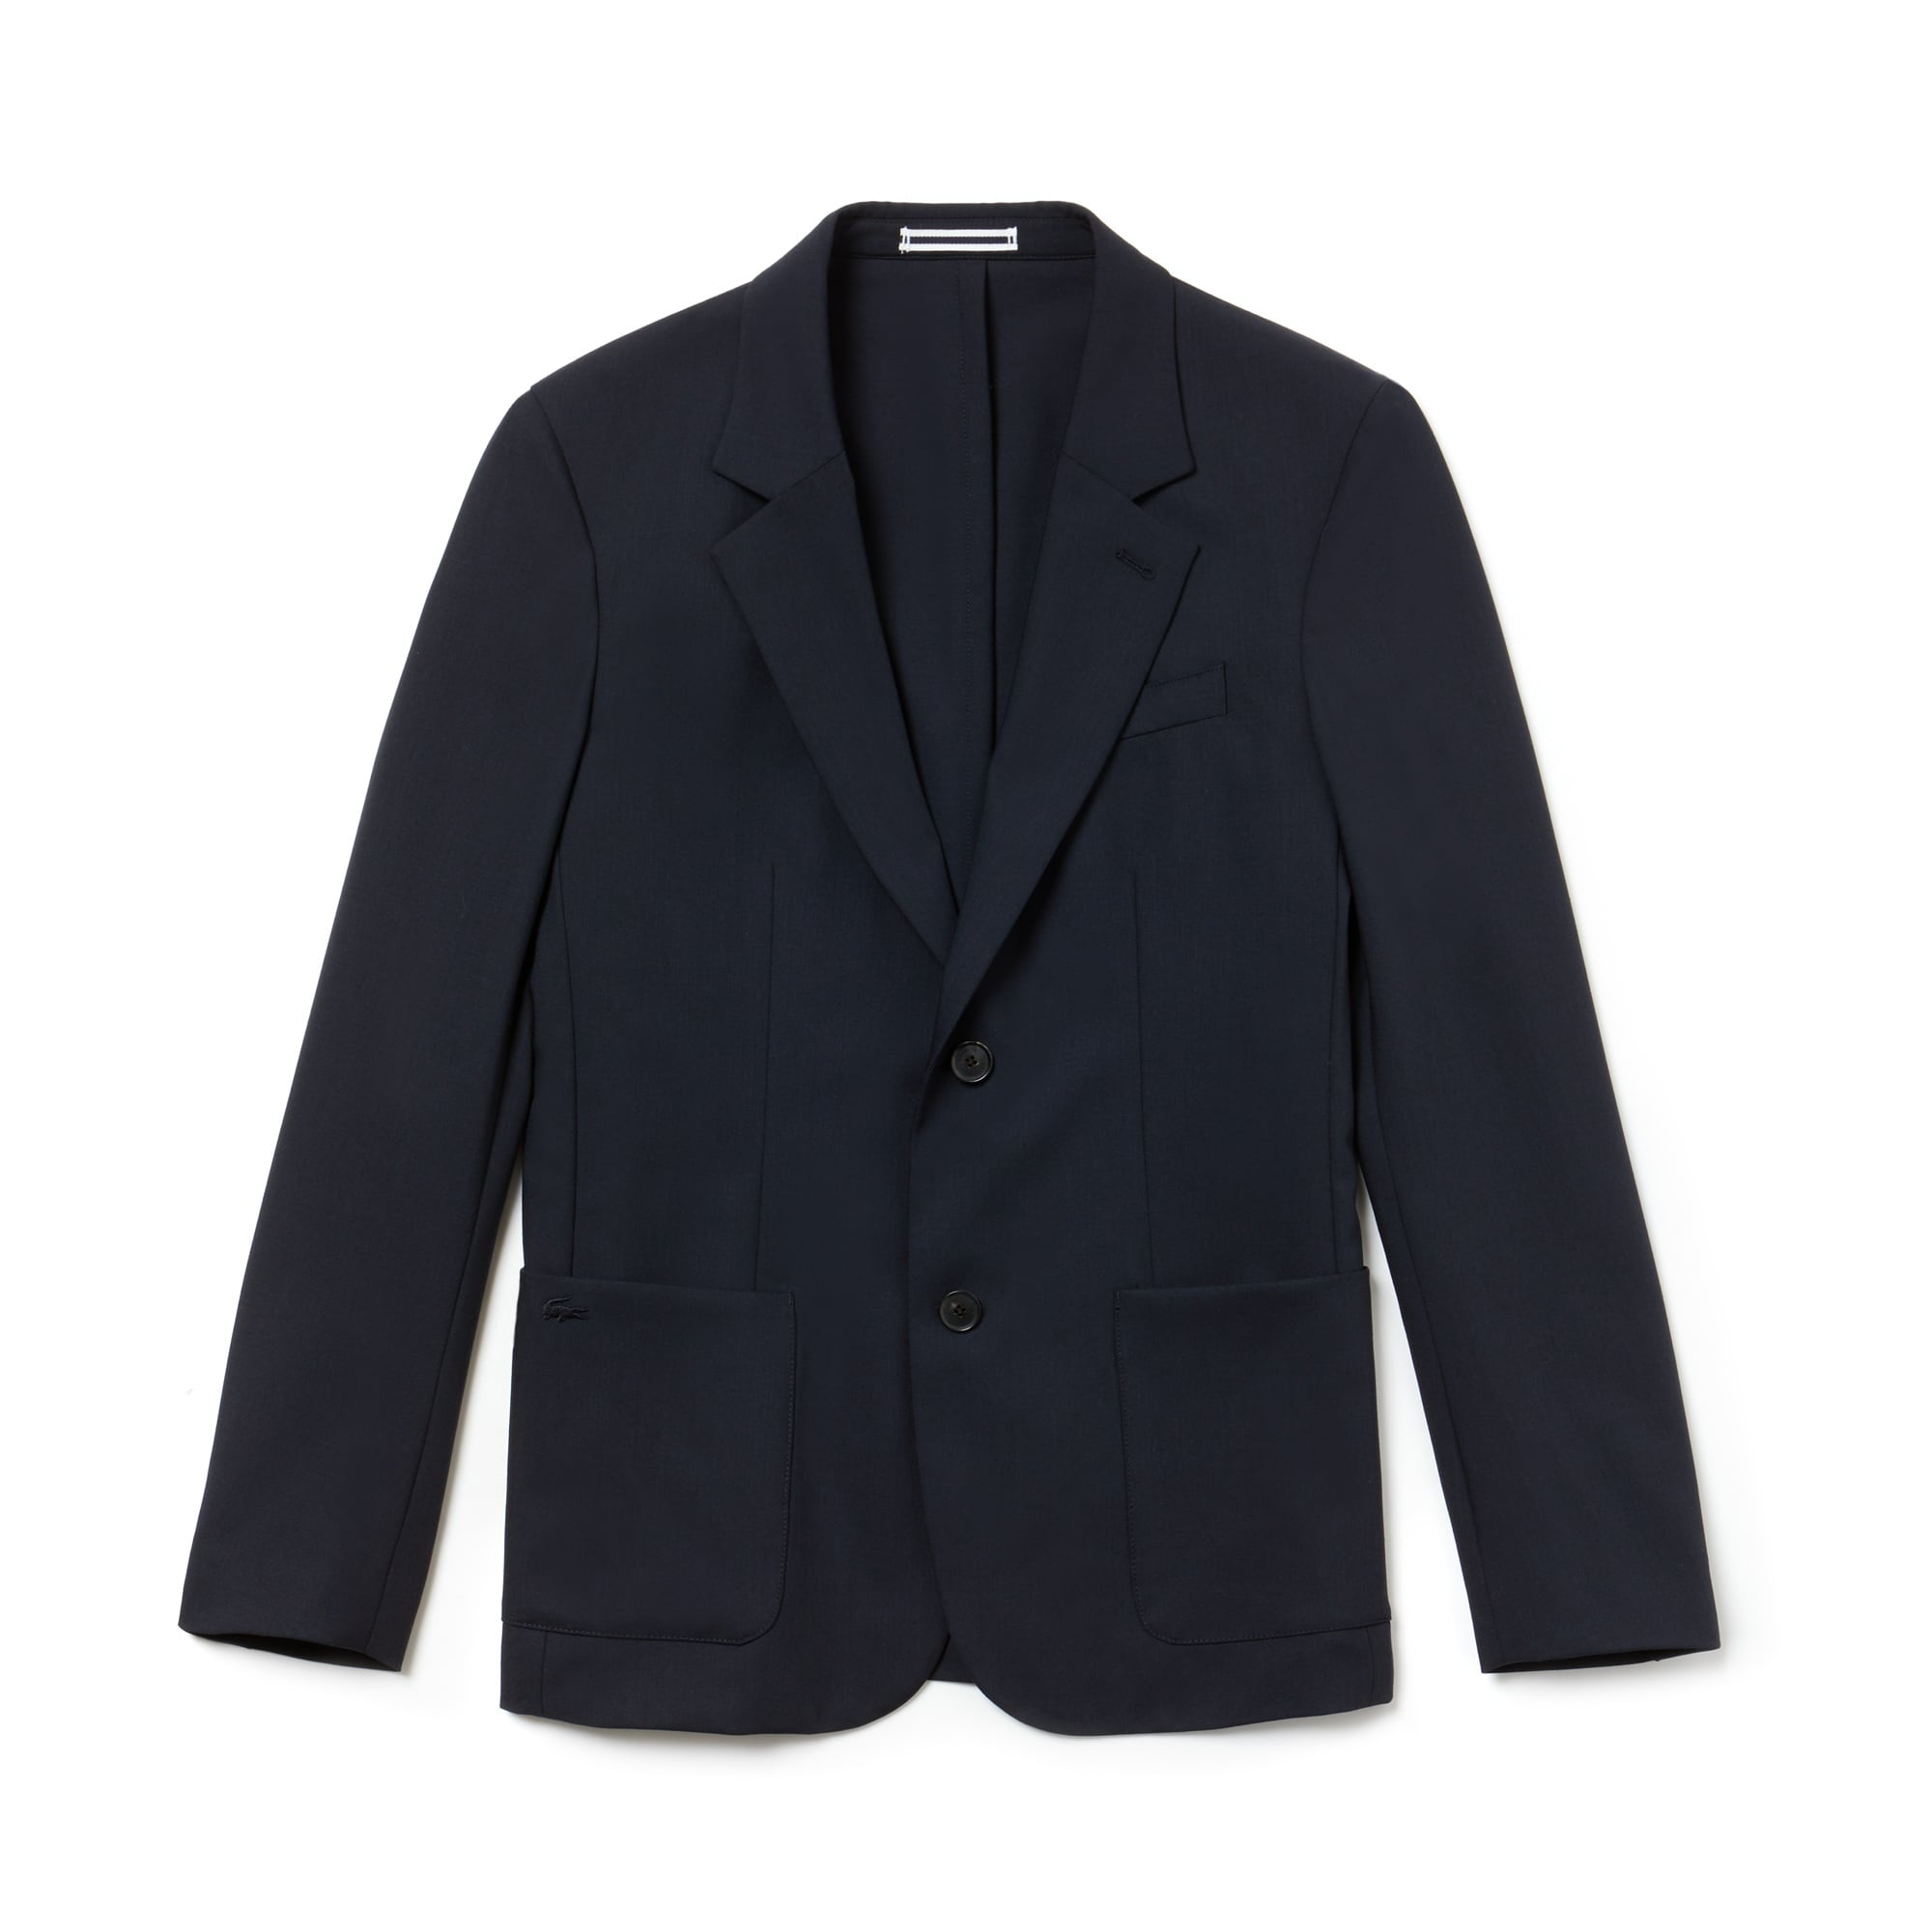 Men's Stretch Wool Twill Blazer